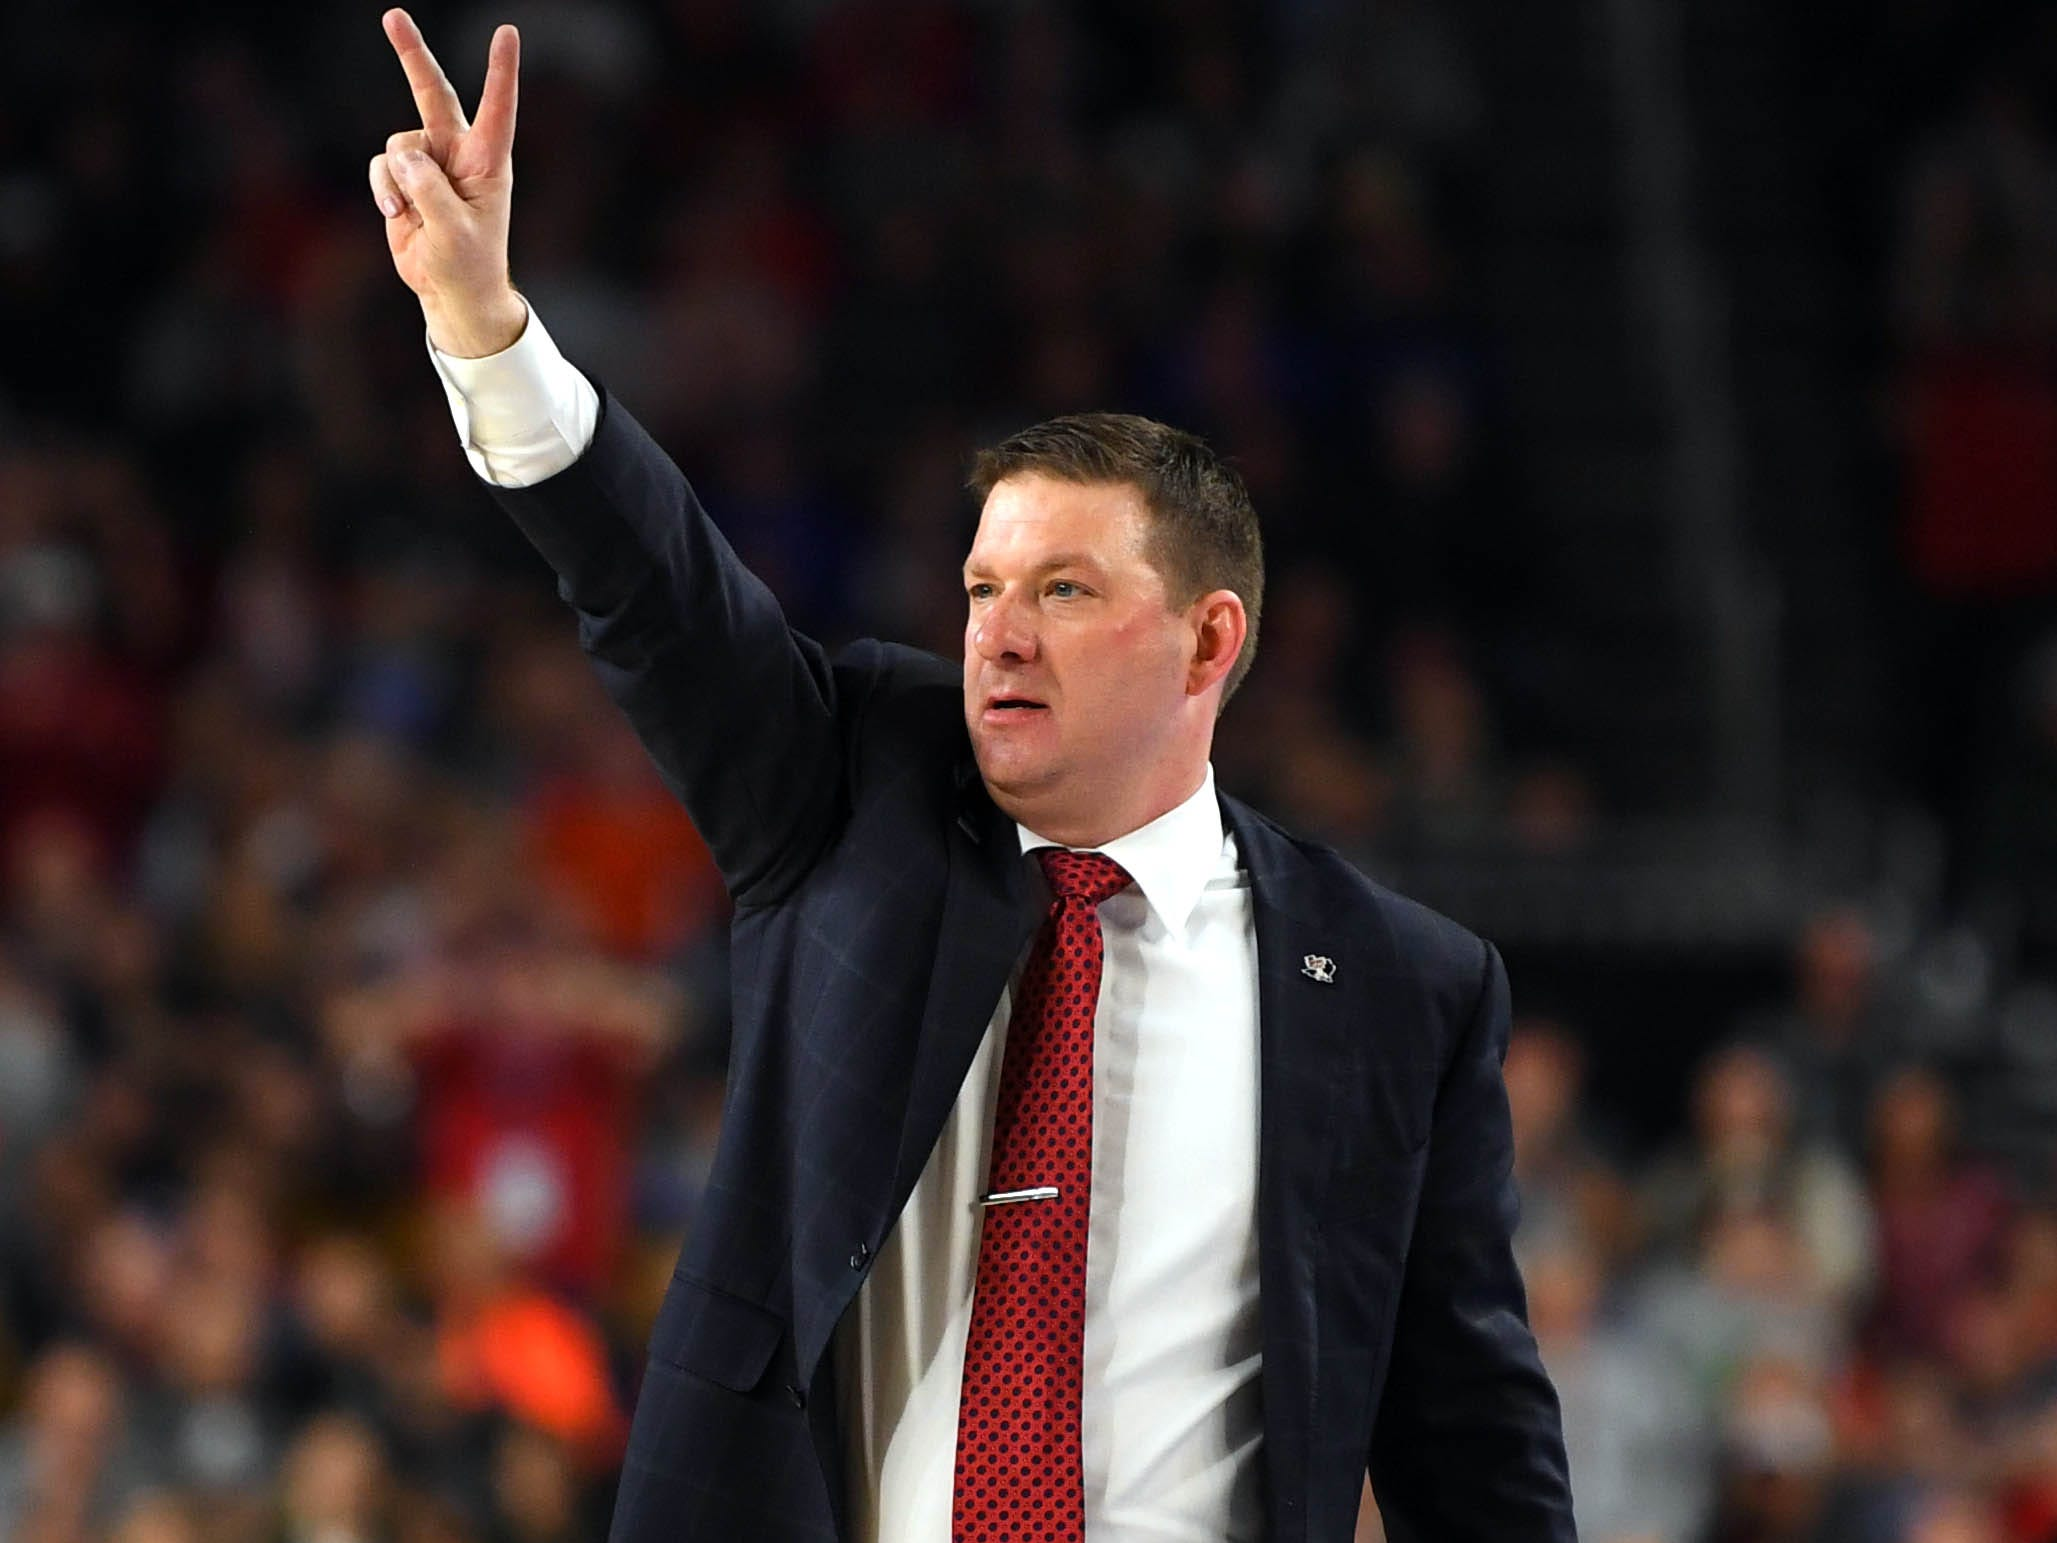 Apr 6, 2019; Minneapolis, MN, USA; Texas Tech Red Raiders head coach Chris Beard during the second half against the Michigan State Spartans in the semifinals of the 2019 men's Final Four at US Bank Stadium. Mandatory Credit: Bob Donnan-USA TODAY Sports